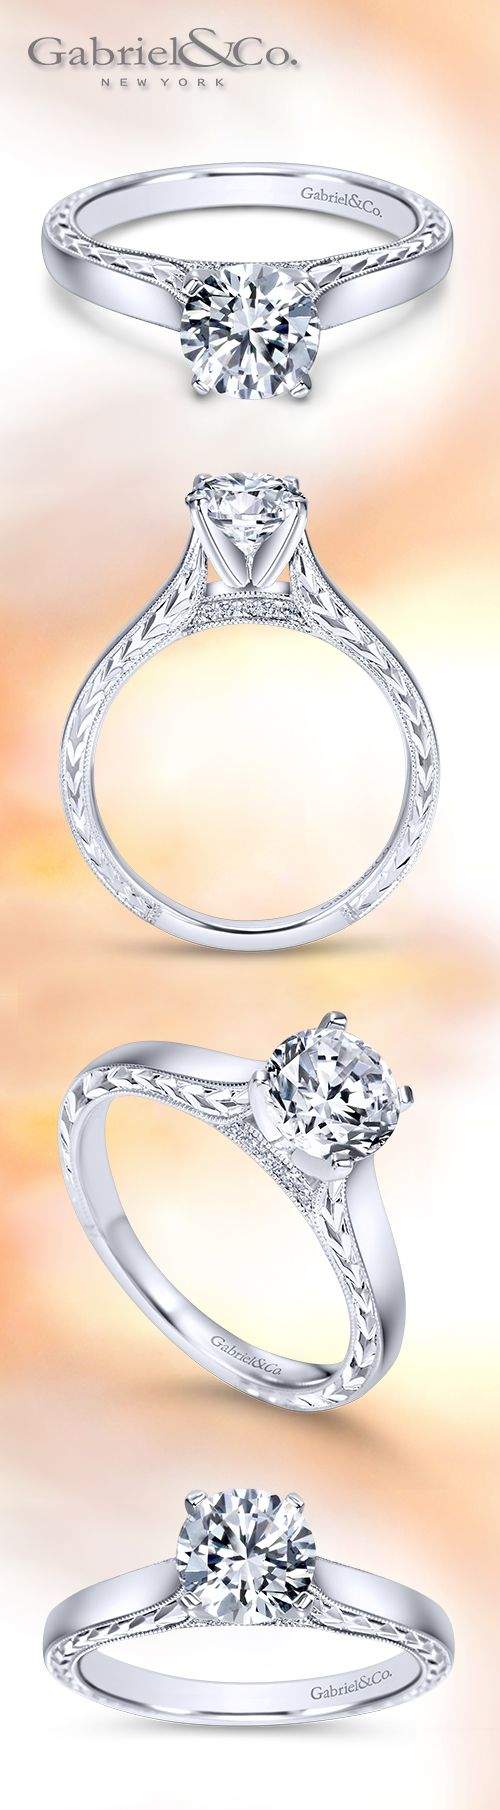 Gabriel & Co. - Voted #1 Most Preferred Bridal Brand. A Victorian Solitaire Engagement Ring made for a Queen. Style:ER8046W44JJ